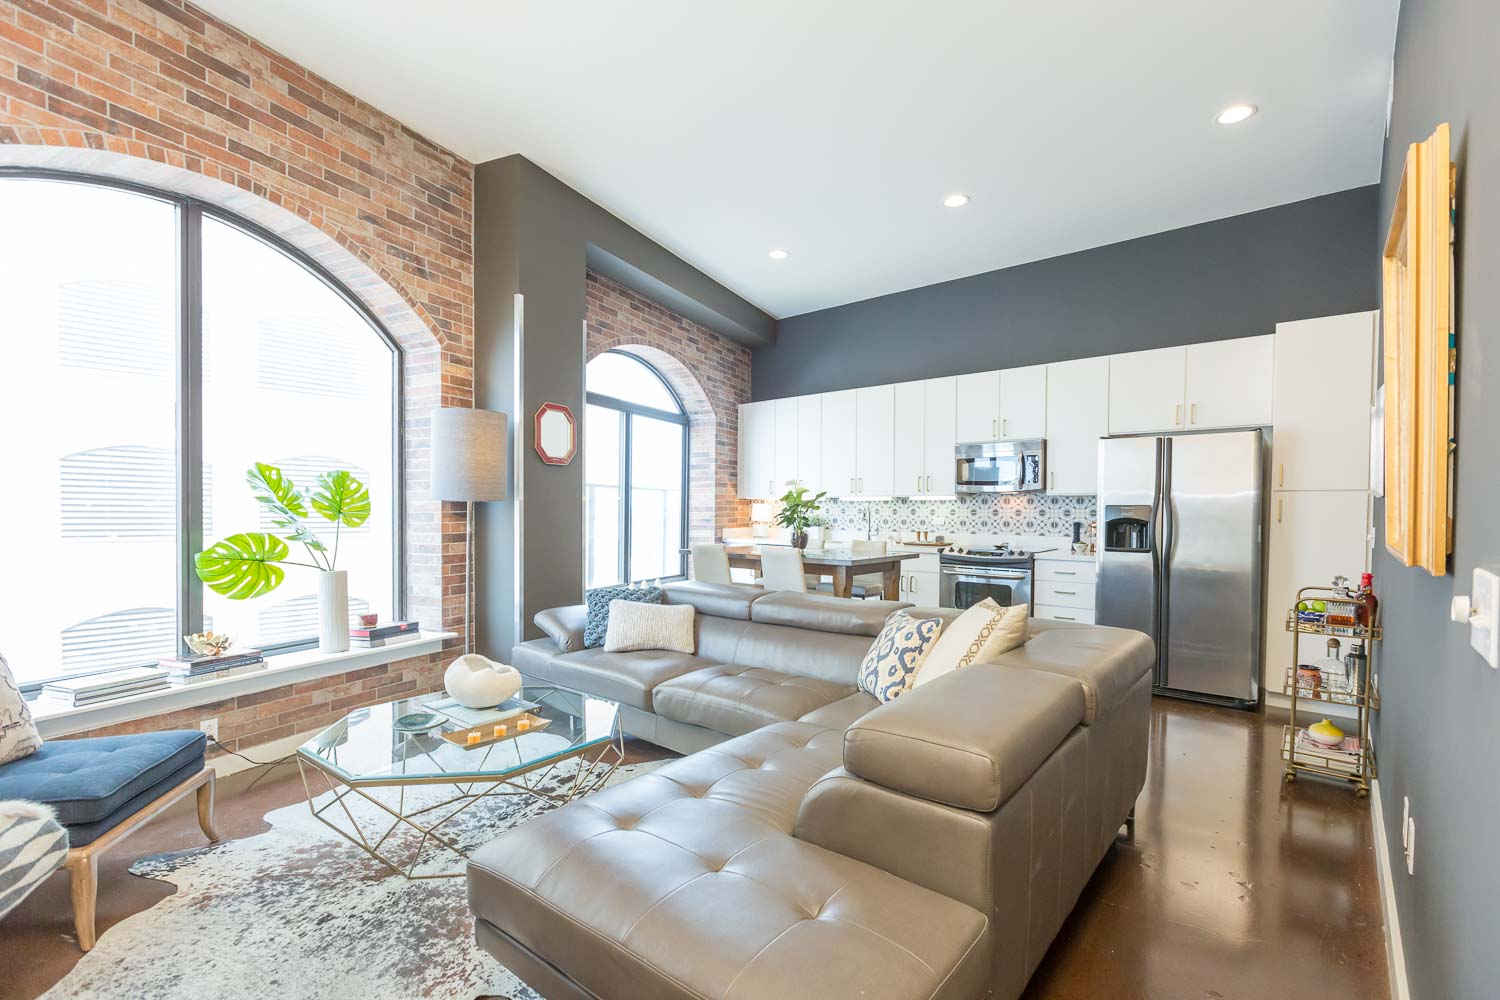 After - We added the brick at the arched windows and selected Sherwin Williams Deep Spacethe walls. The cabinets were painted white and gold hardware was added. The stained concrete floors were complimented with the cowhide rug. We worked with the existing taupe leather sofa.